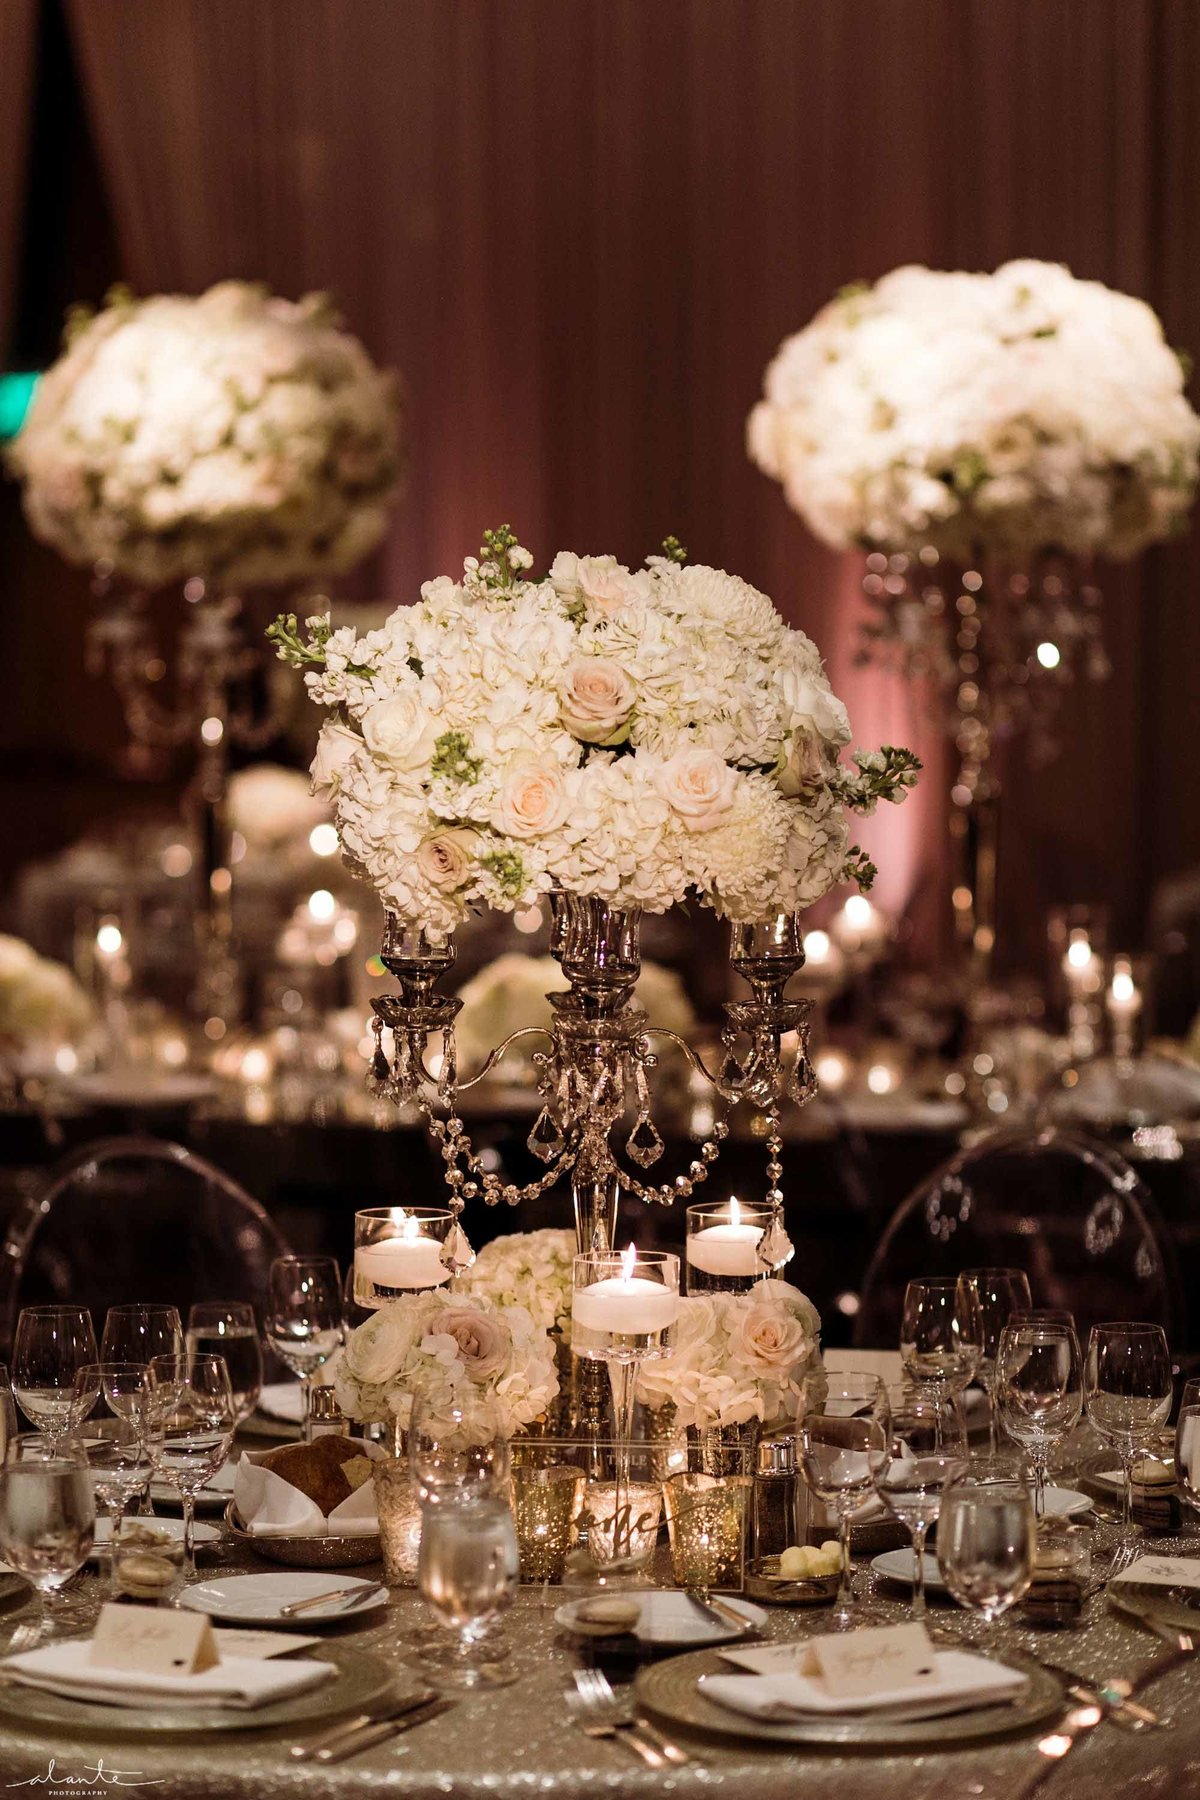 64Seattle-luxury-wedding-Flora-Nova-Design